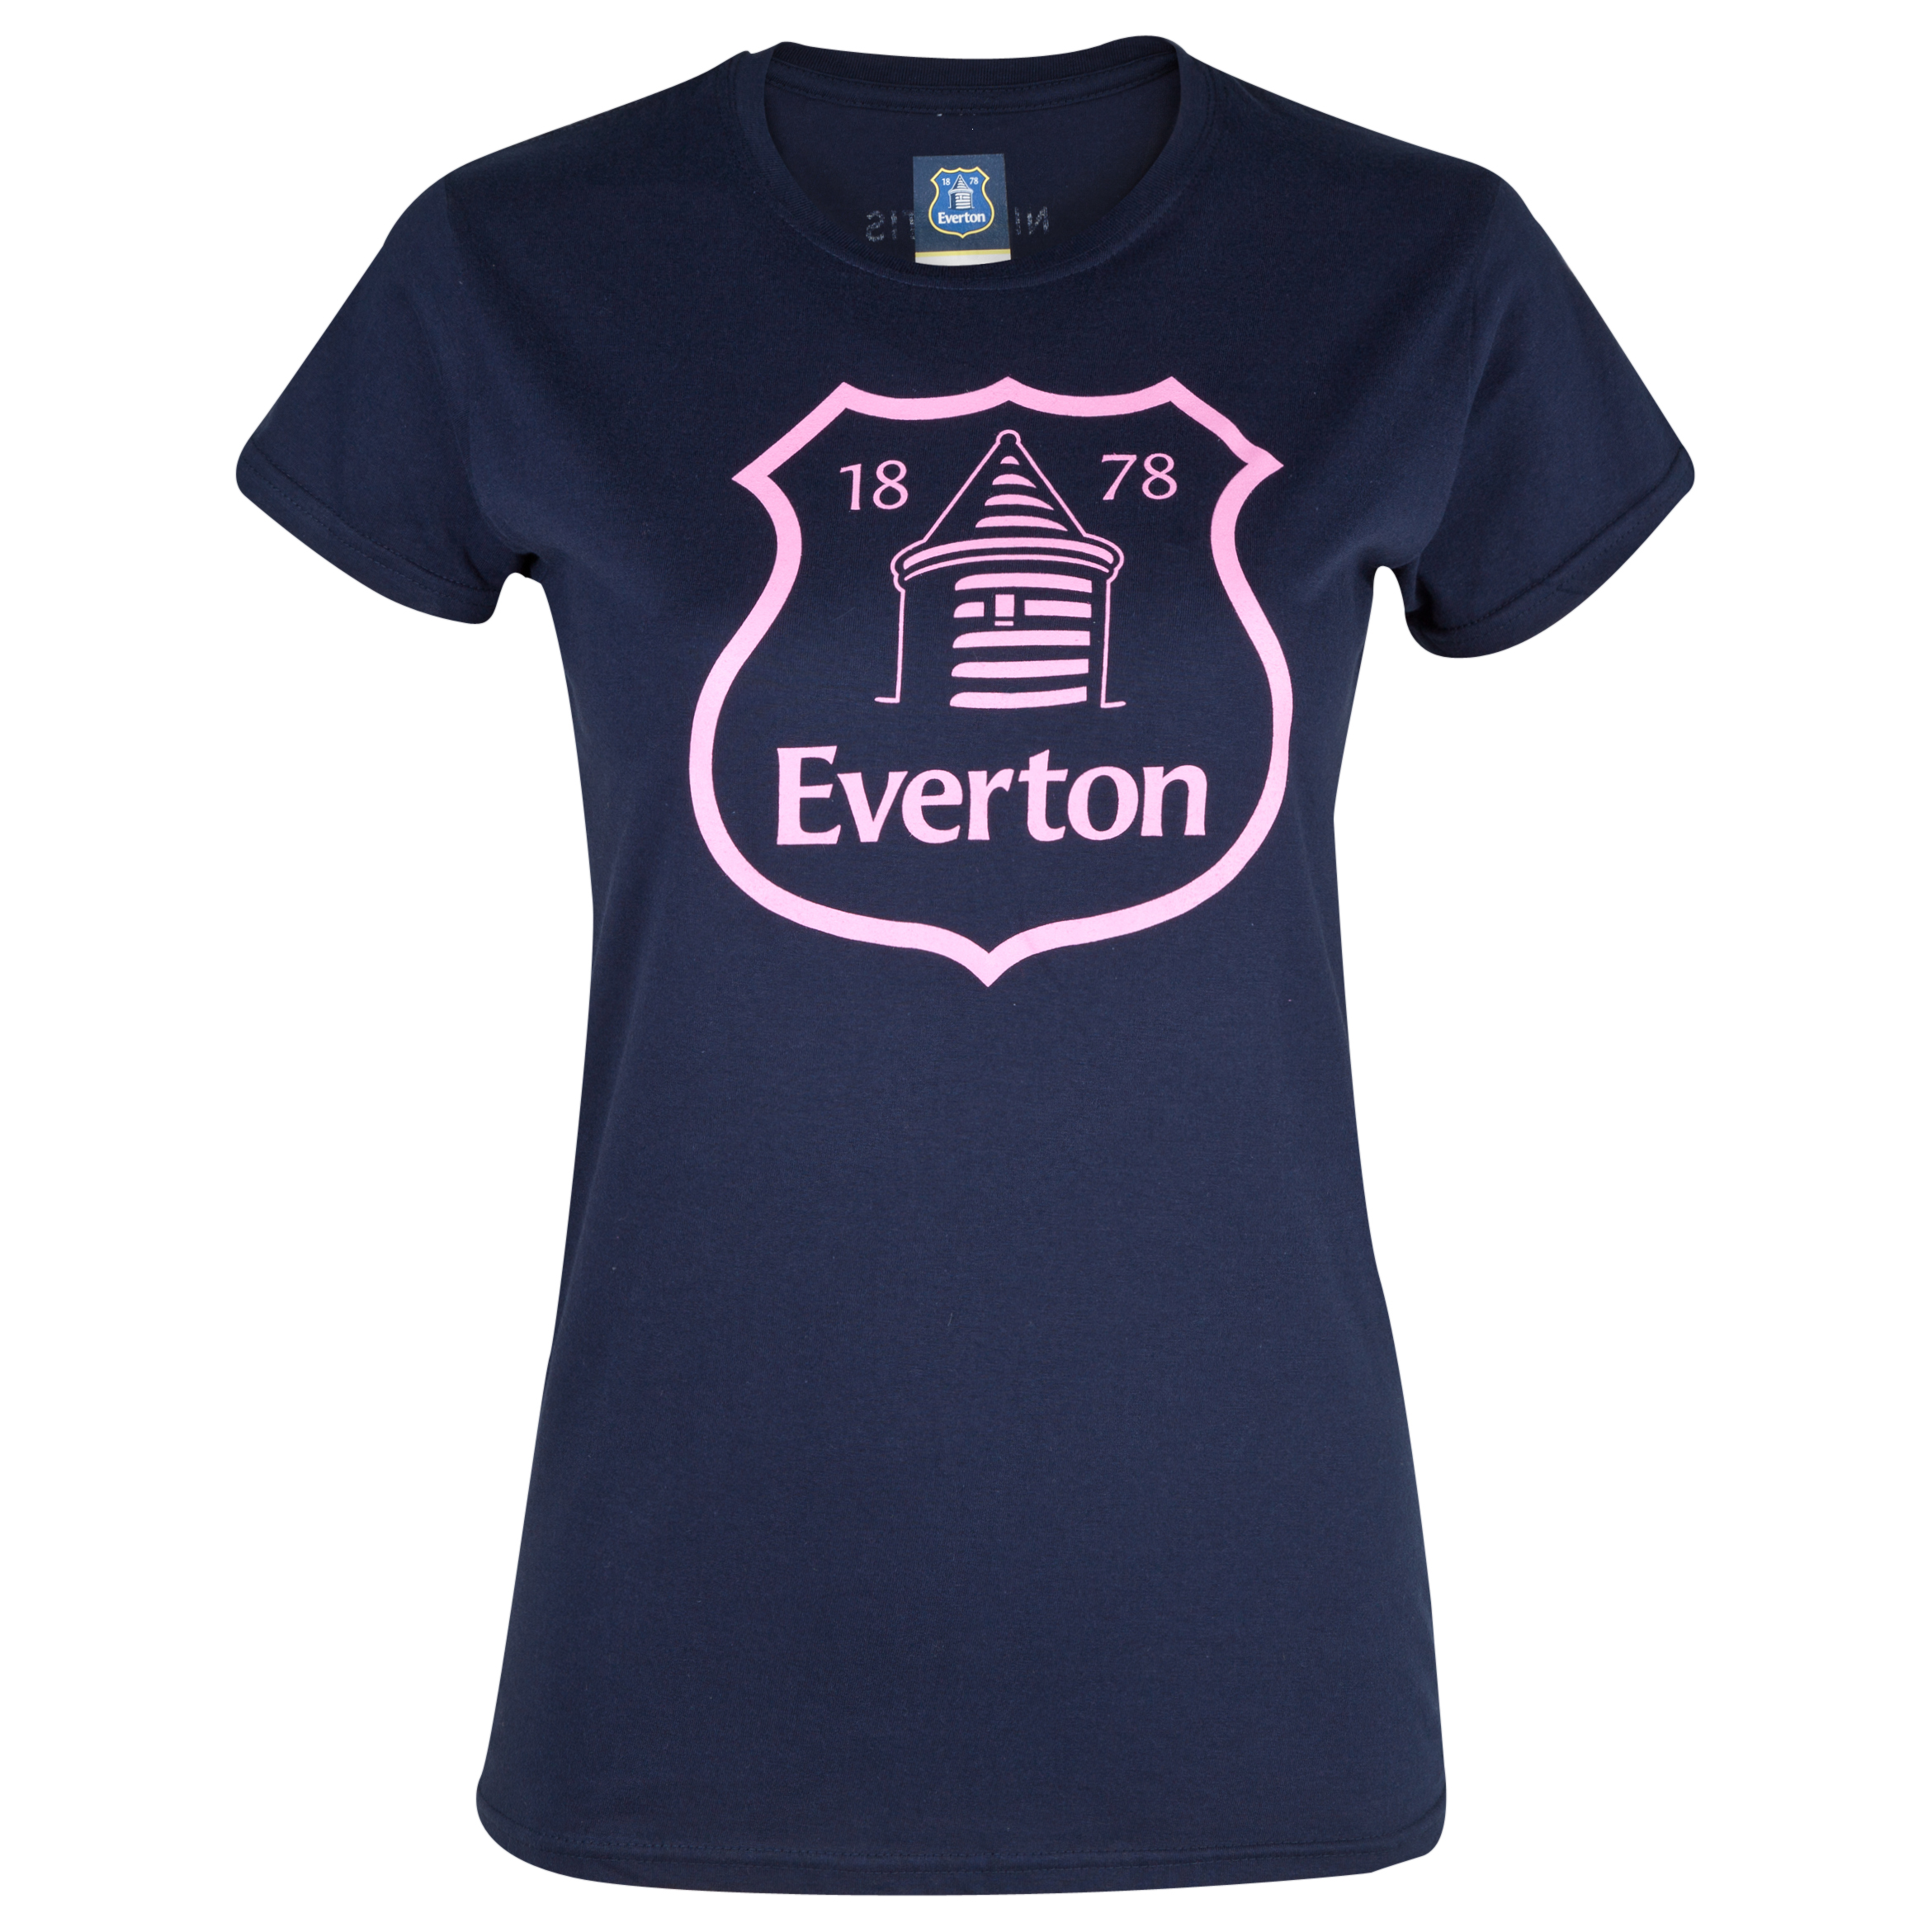 Everton 2for20 Crest T-Shirt - Womens Navy